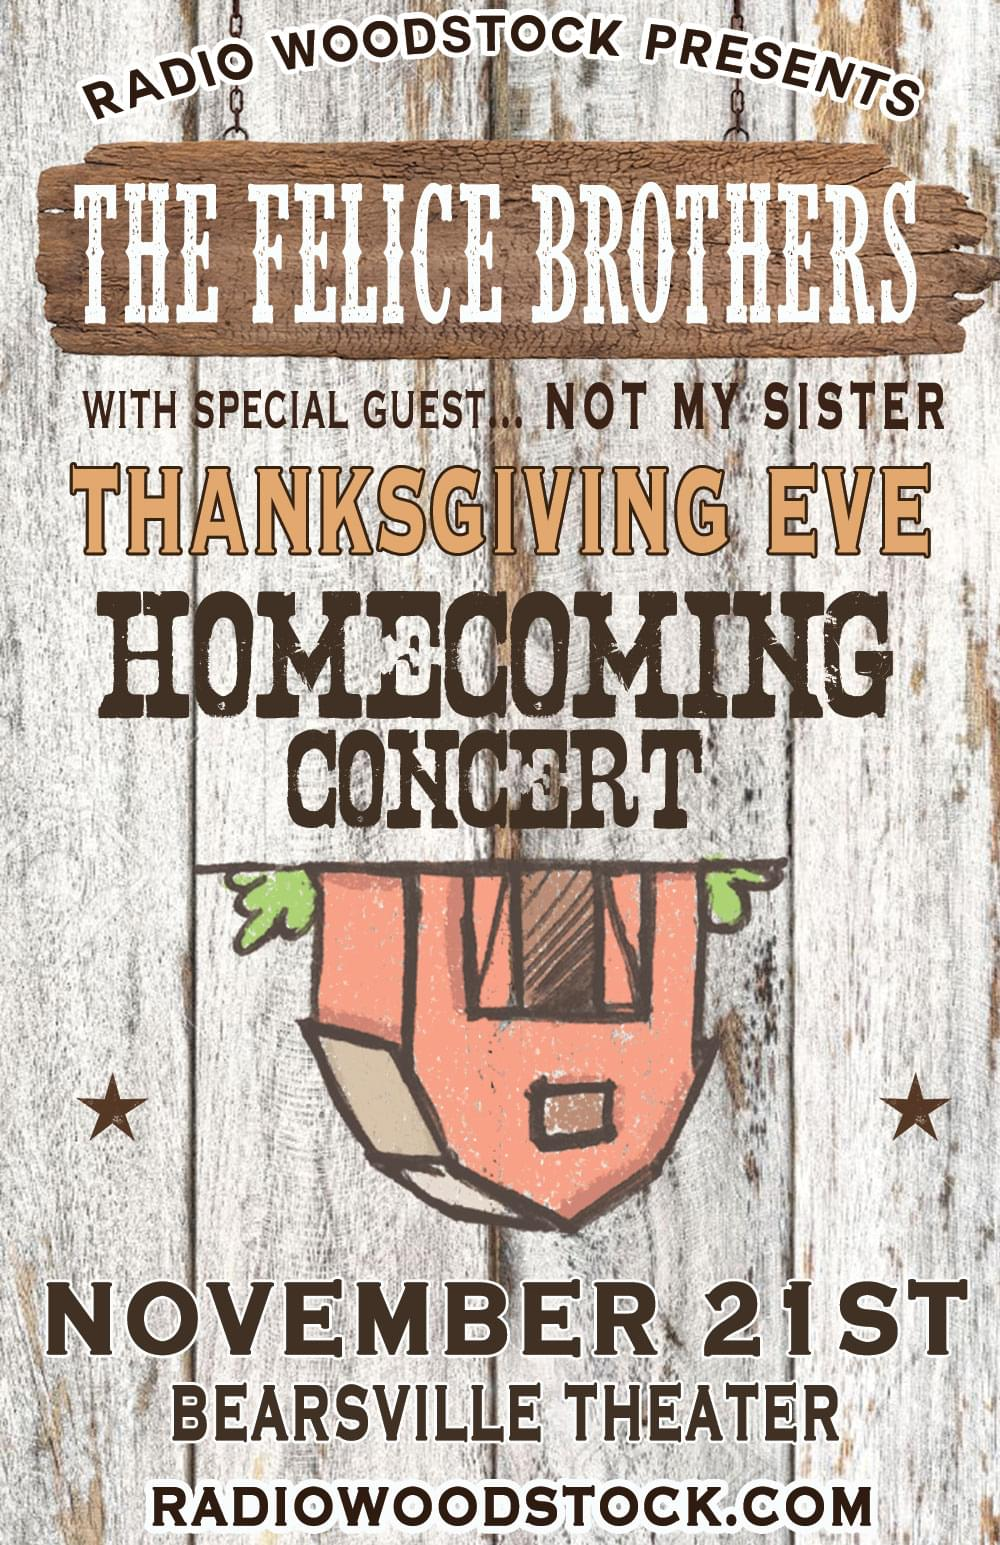 The Felice Brothers Thanksgiving Eve Homecoming Concert!